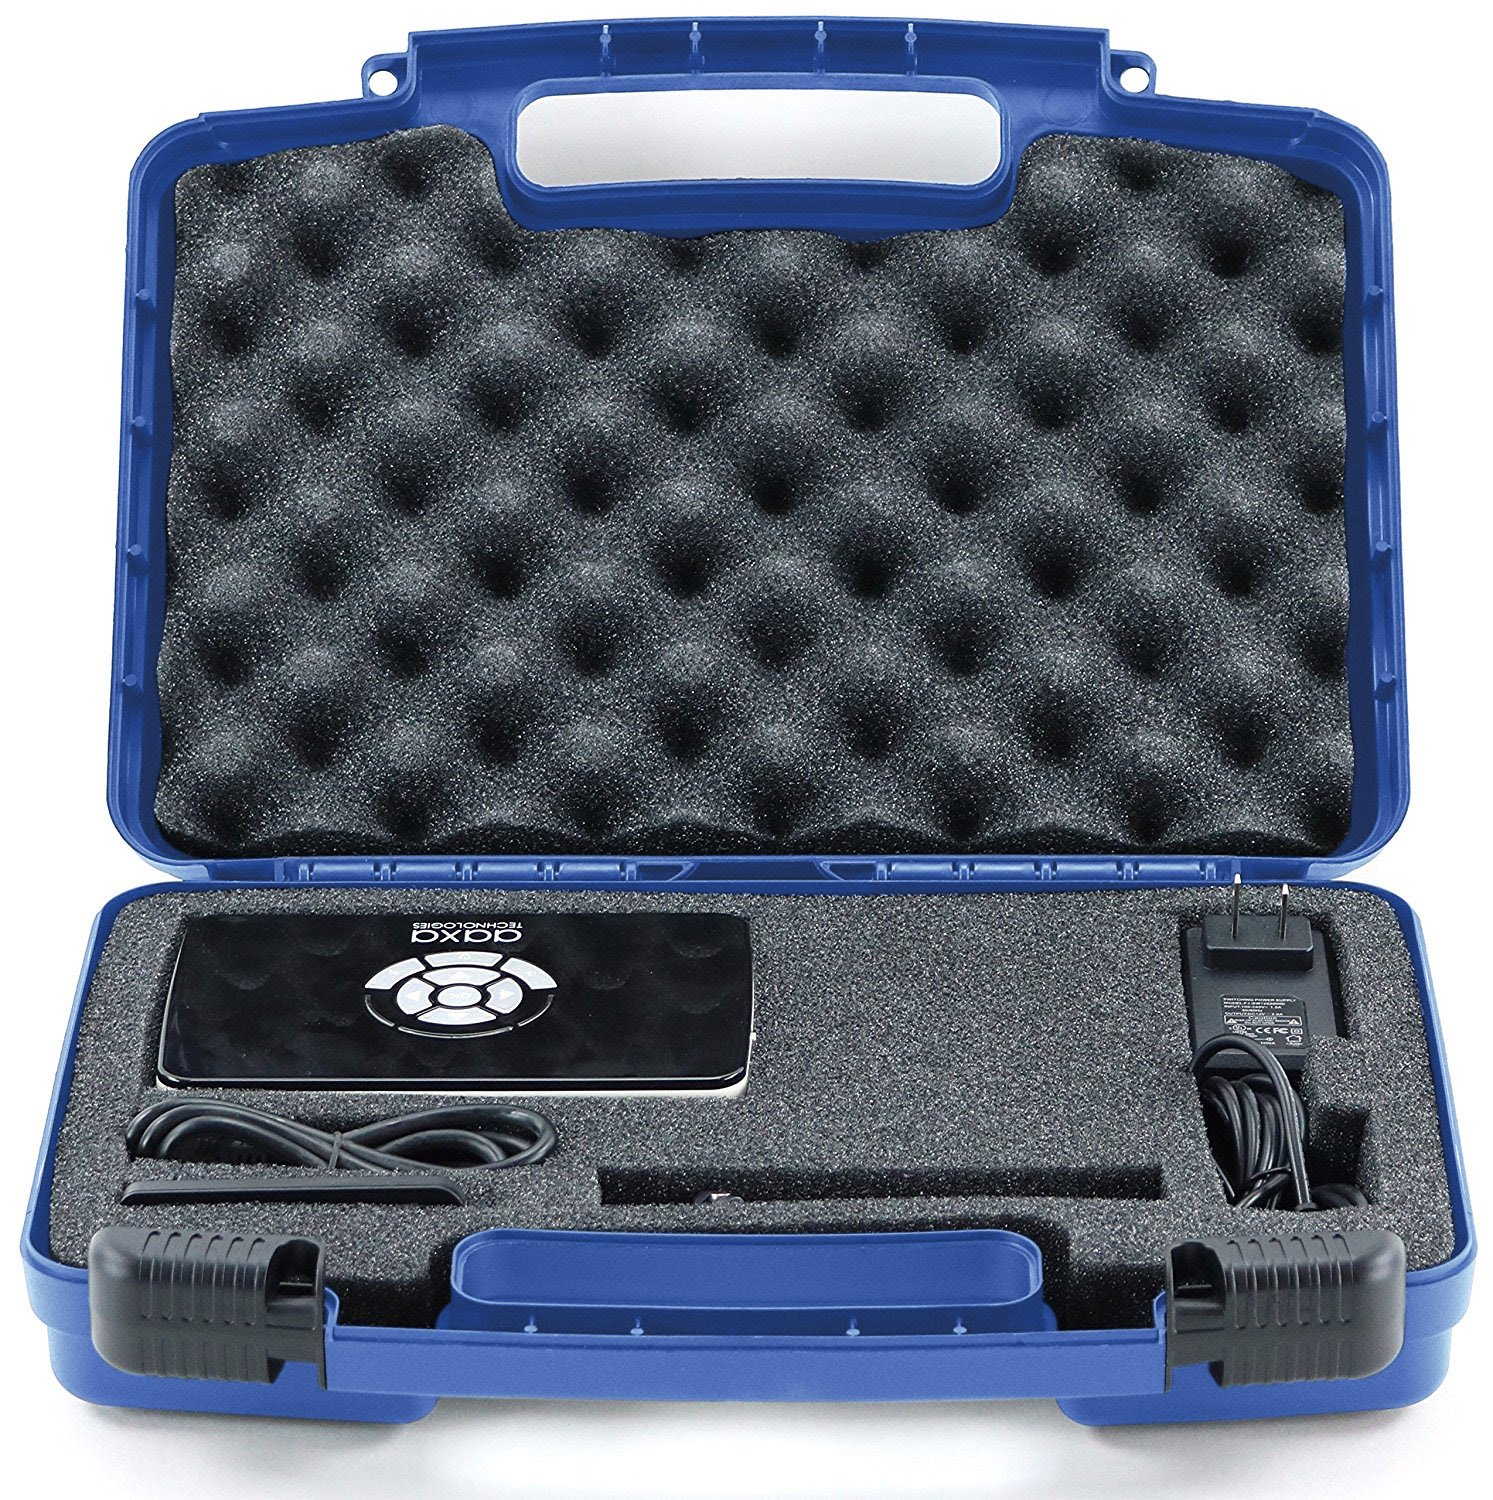 Life Made Better Storage Organizer - Compatible with AAXA P5, P300, P700, P4X, IVATION, Philips, Brookstone Portable Projectors and Accessories - Durable Carrying Case - Blue by Life Made Better